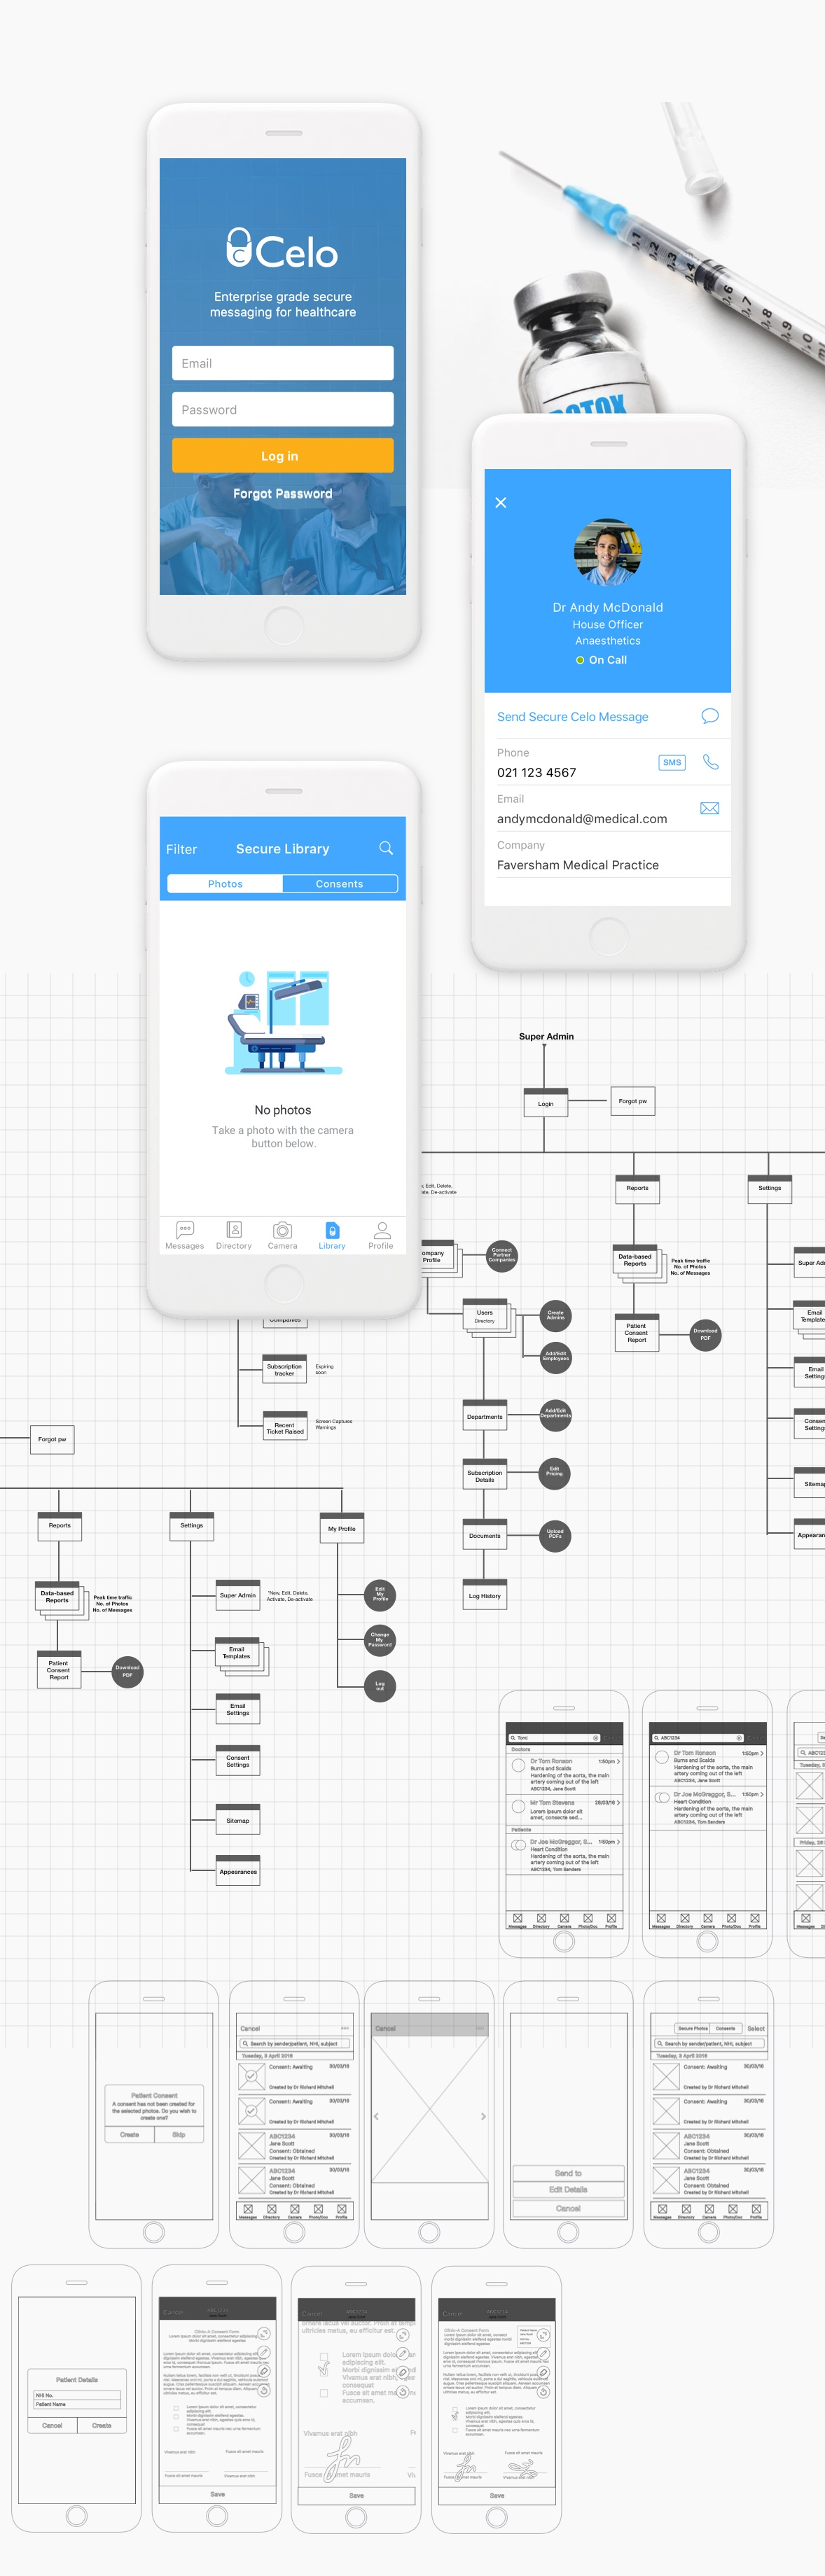 sitemap and wireframes